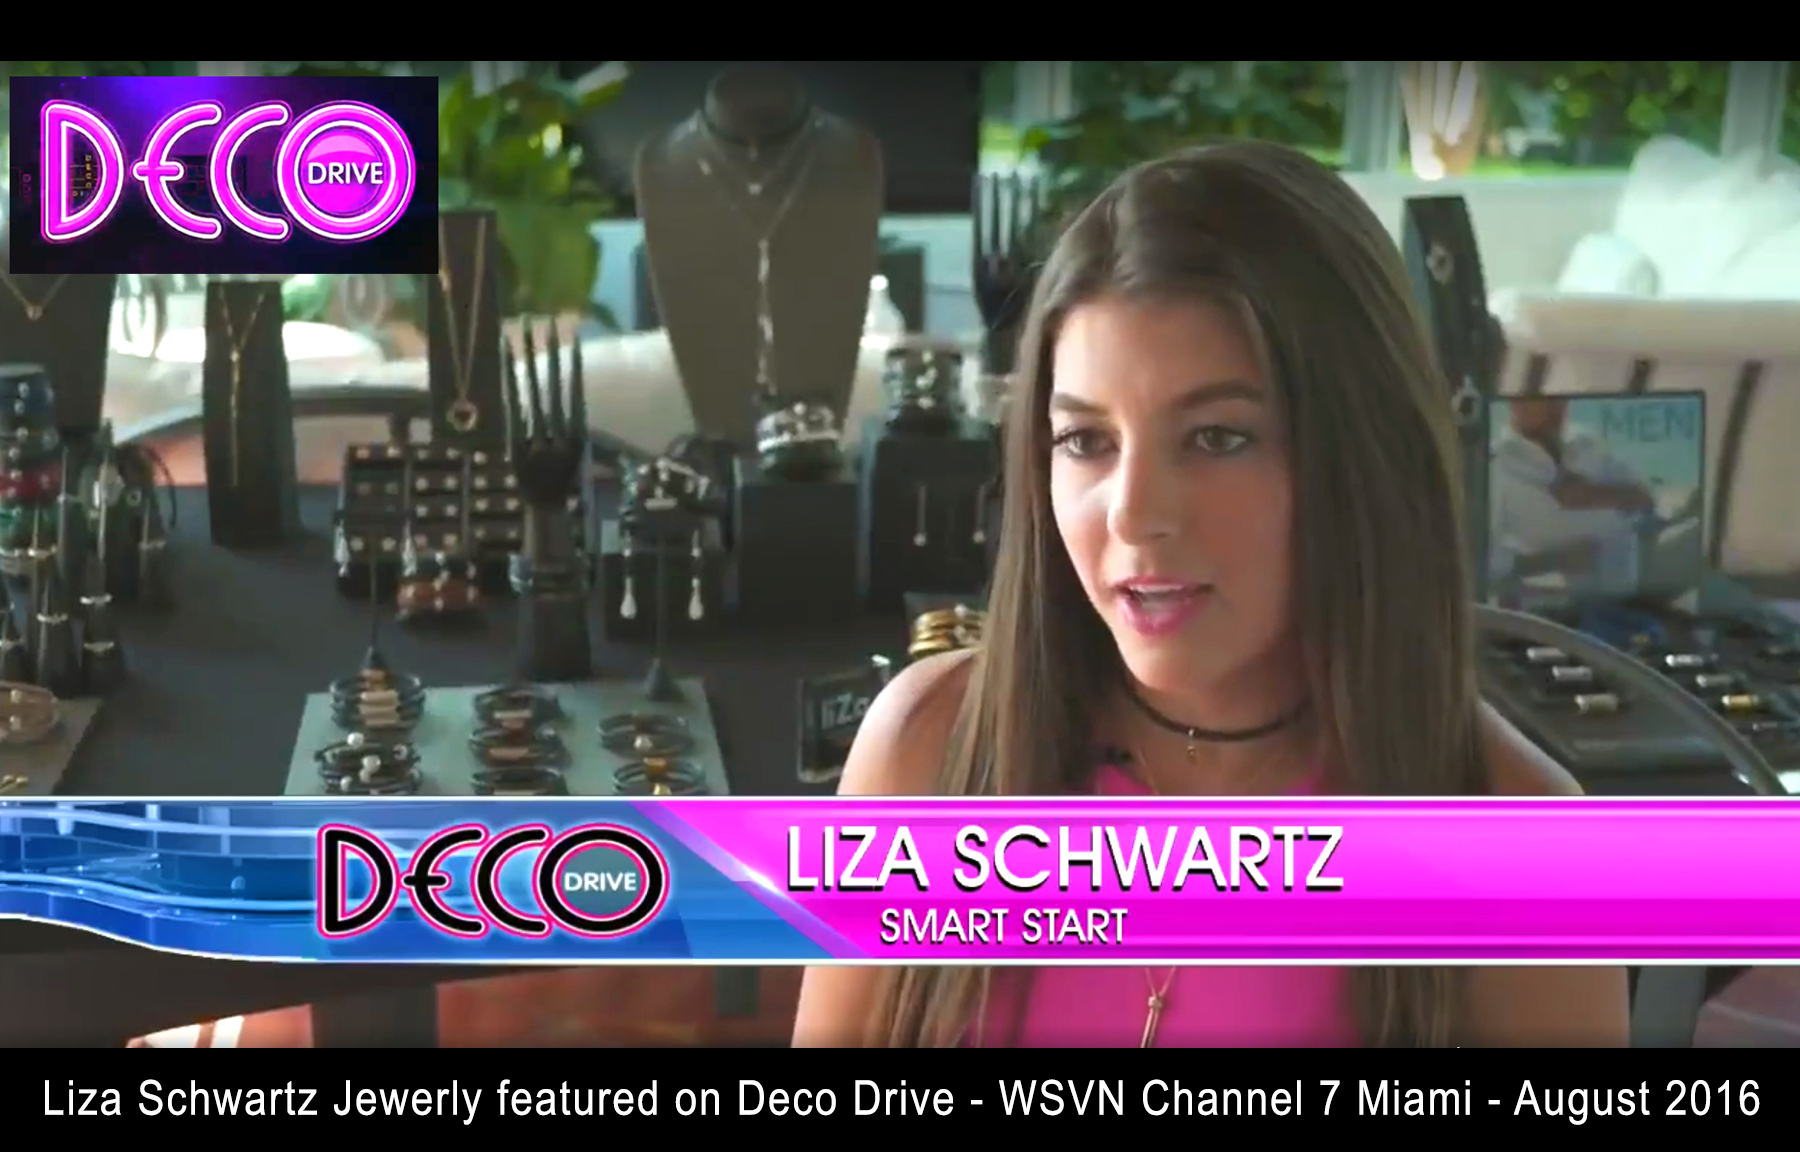 lizapress-deco-drive-tv-celebrity-page